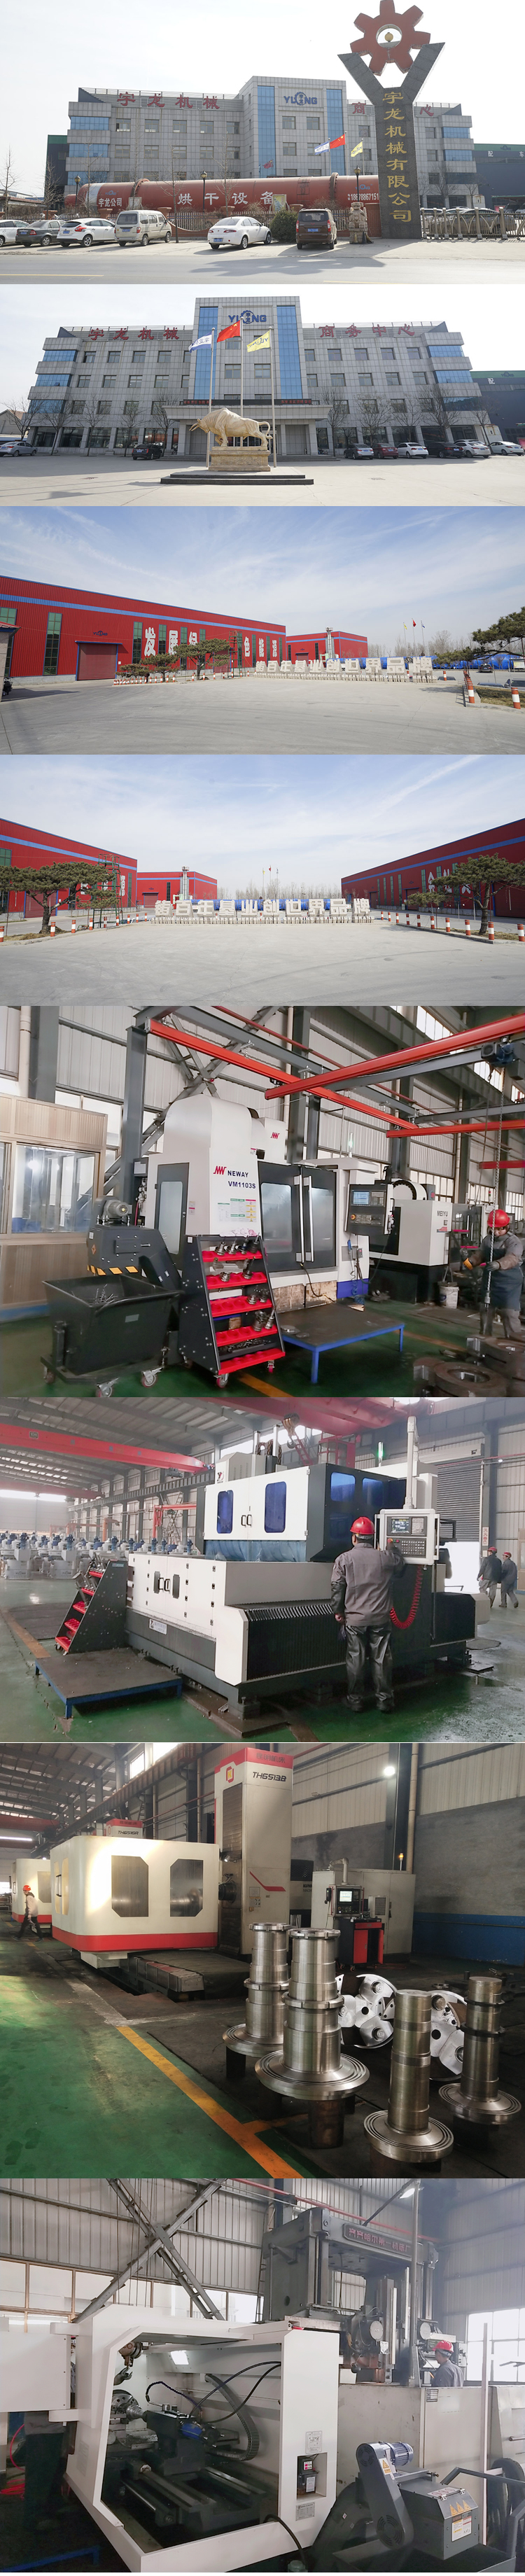 3Tph Wood Pellet Production Plant-yulong working condition